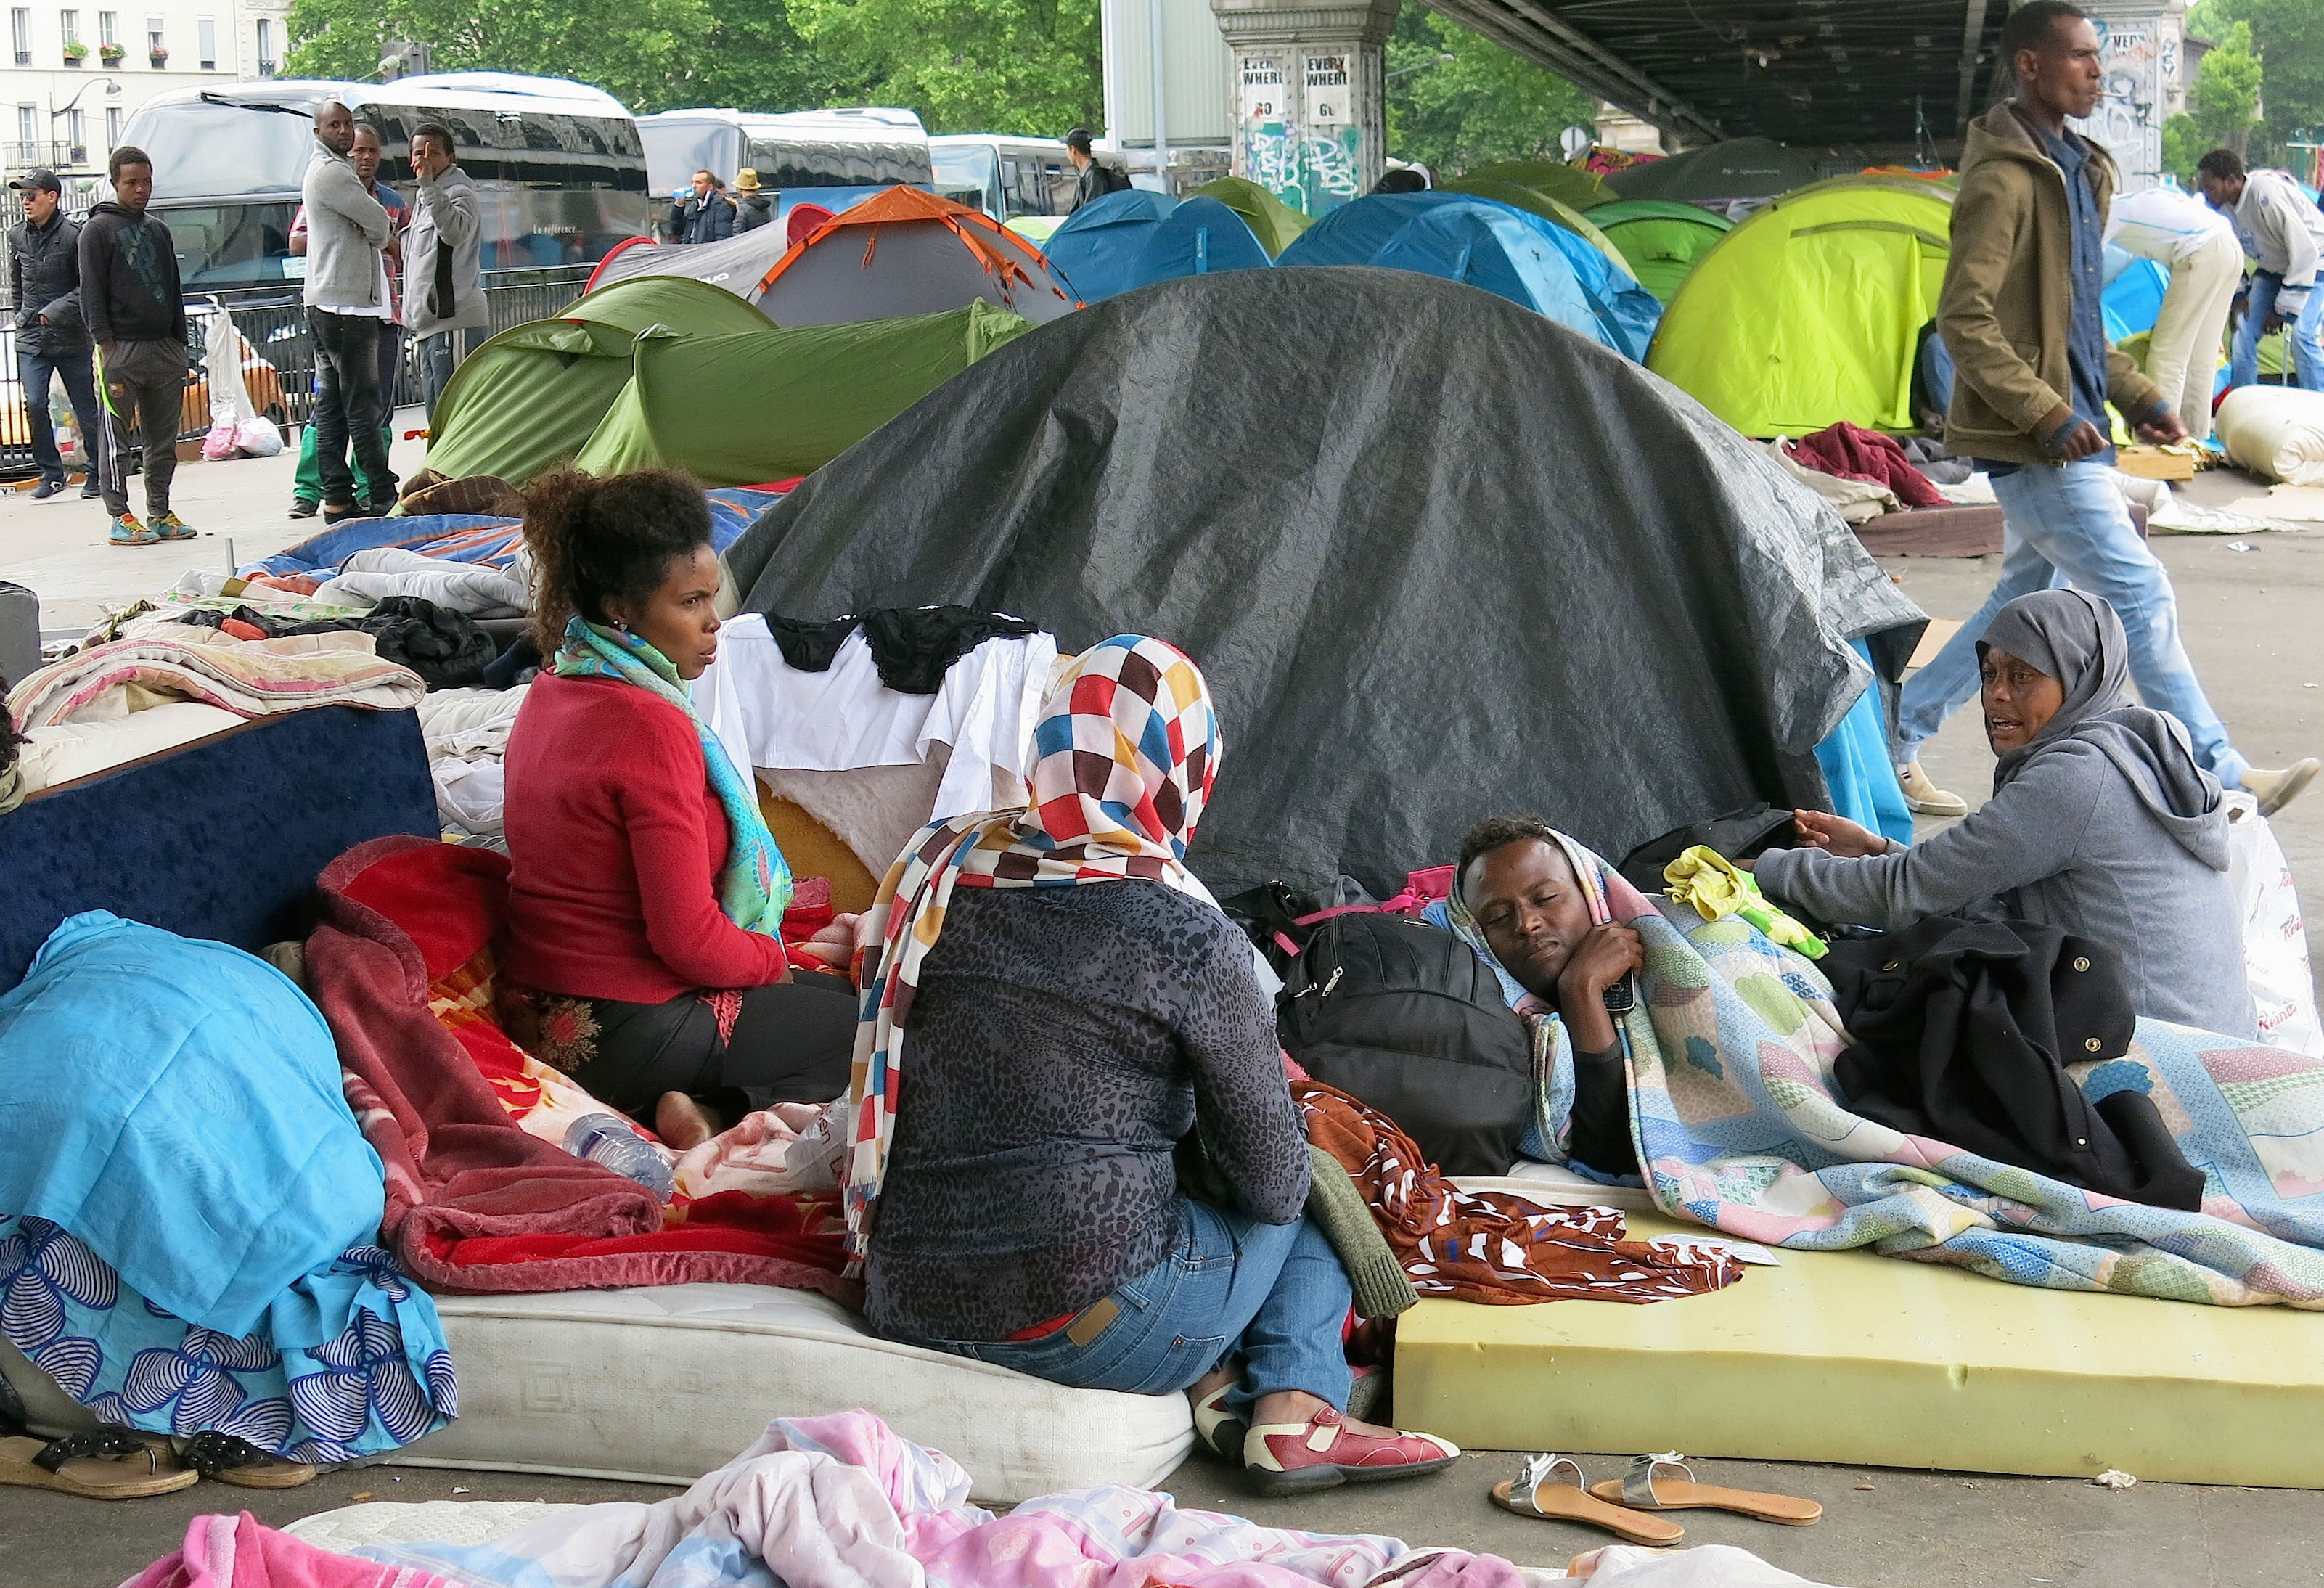 France. Paris le 2015/05/26Campement de migrants a Paris dans le 18 ieme arrondissementRefugies migrants a Paris a la Porte de la Chapelle a Paris dormant sous des tentes